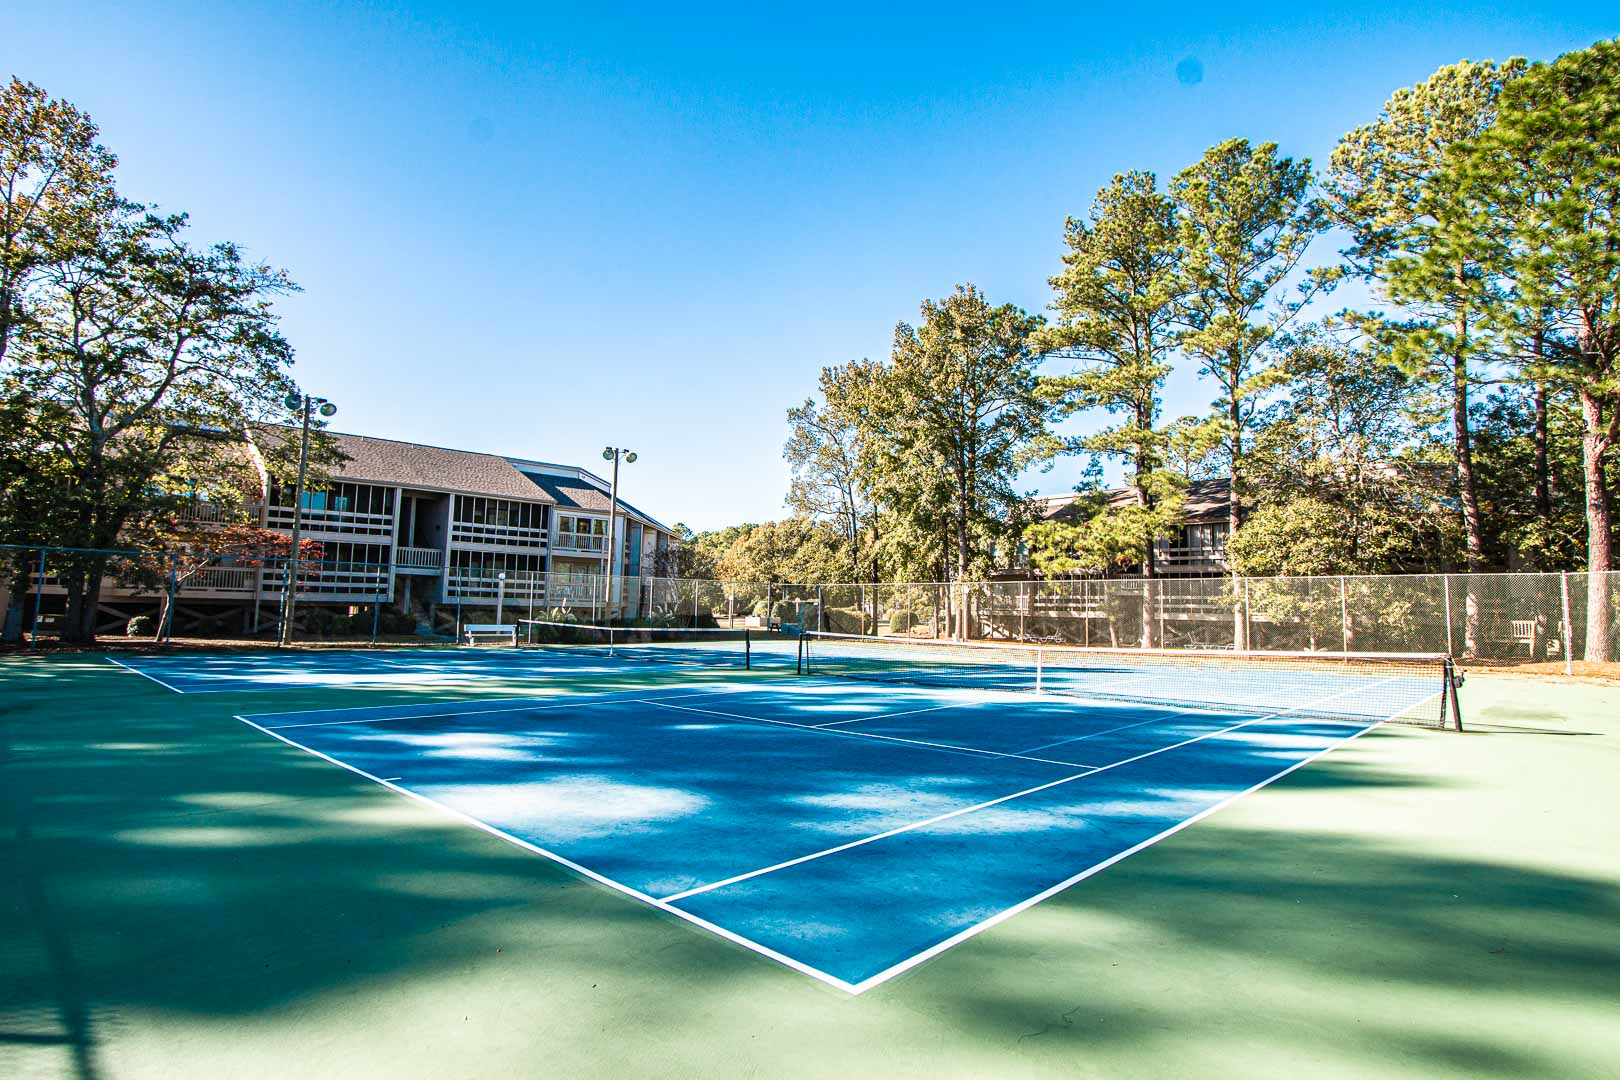 A spacious outdoor tennis court at VRI's Waterwood Townhomes in New Bern, North Carolina.